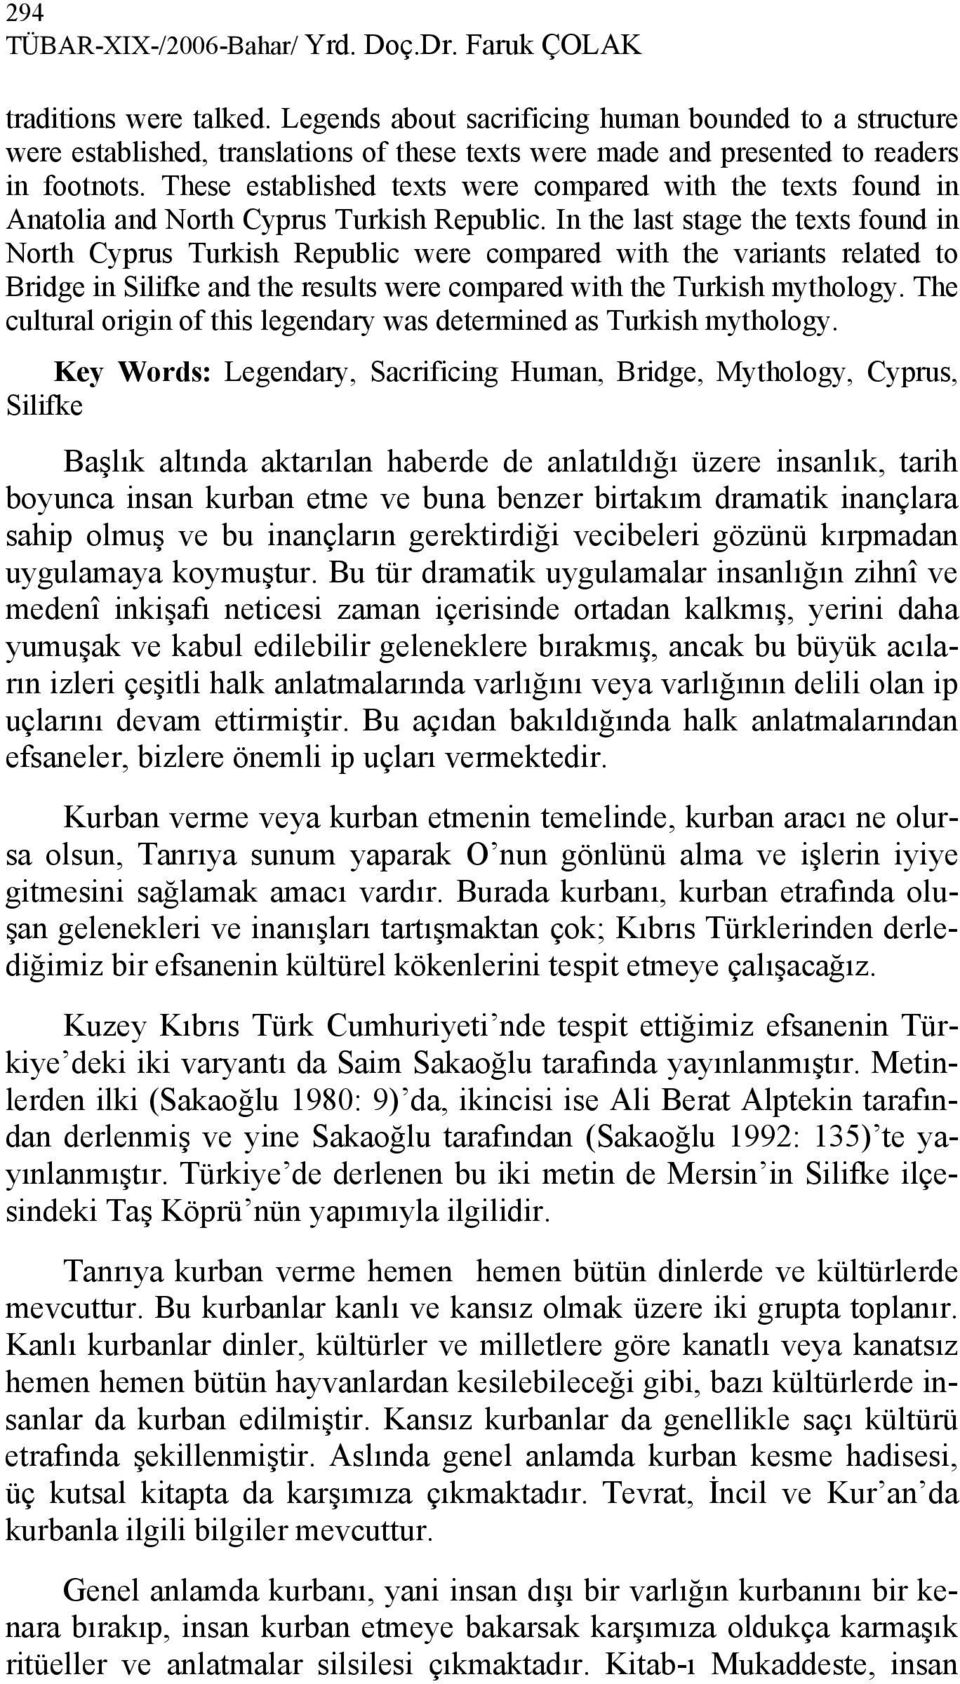 These established texts were compared with the texts found in Anatolia and North Cyprus Turkish Republic.